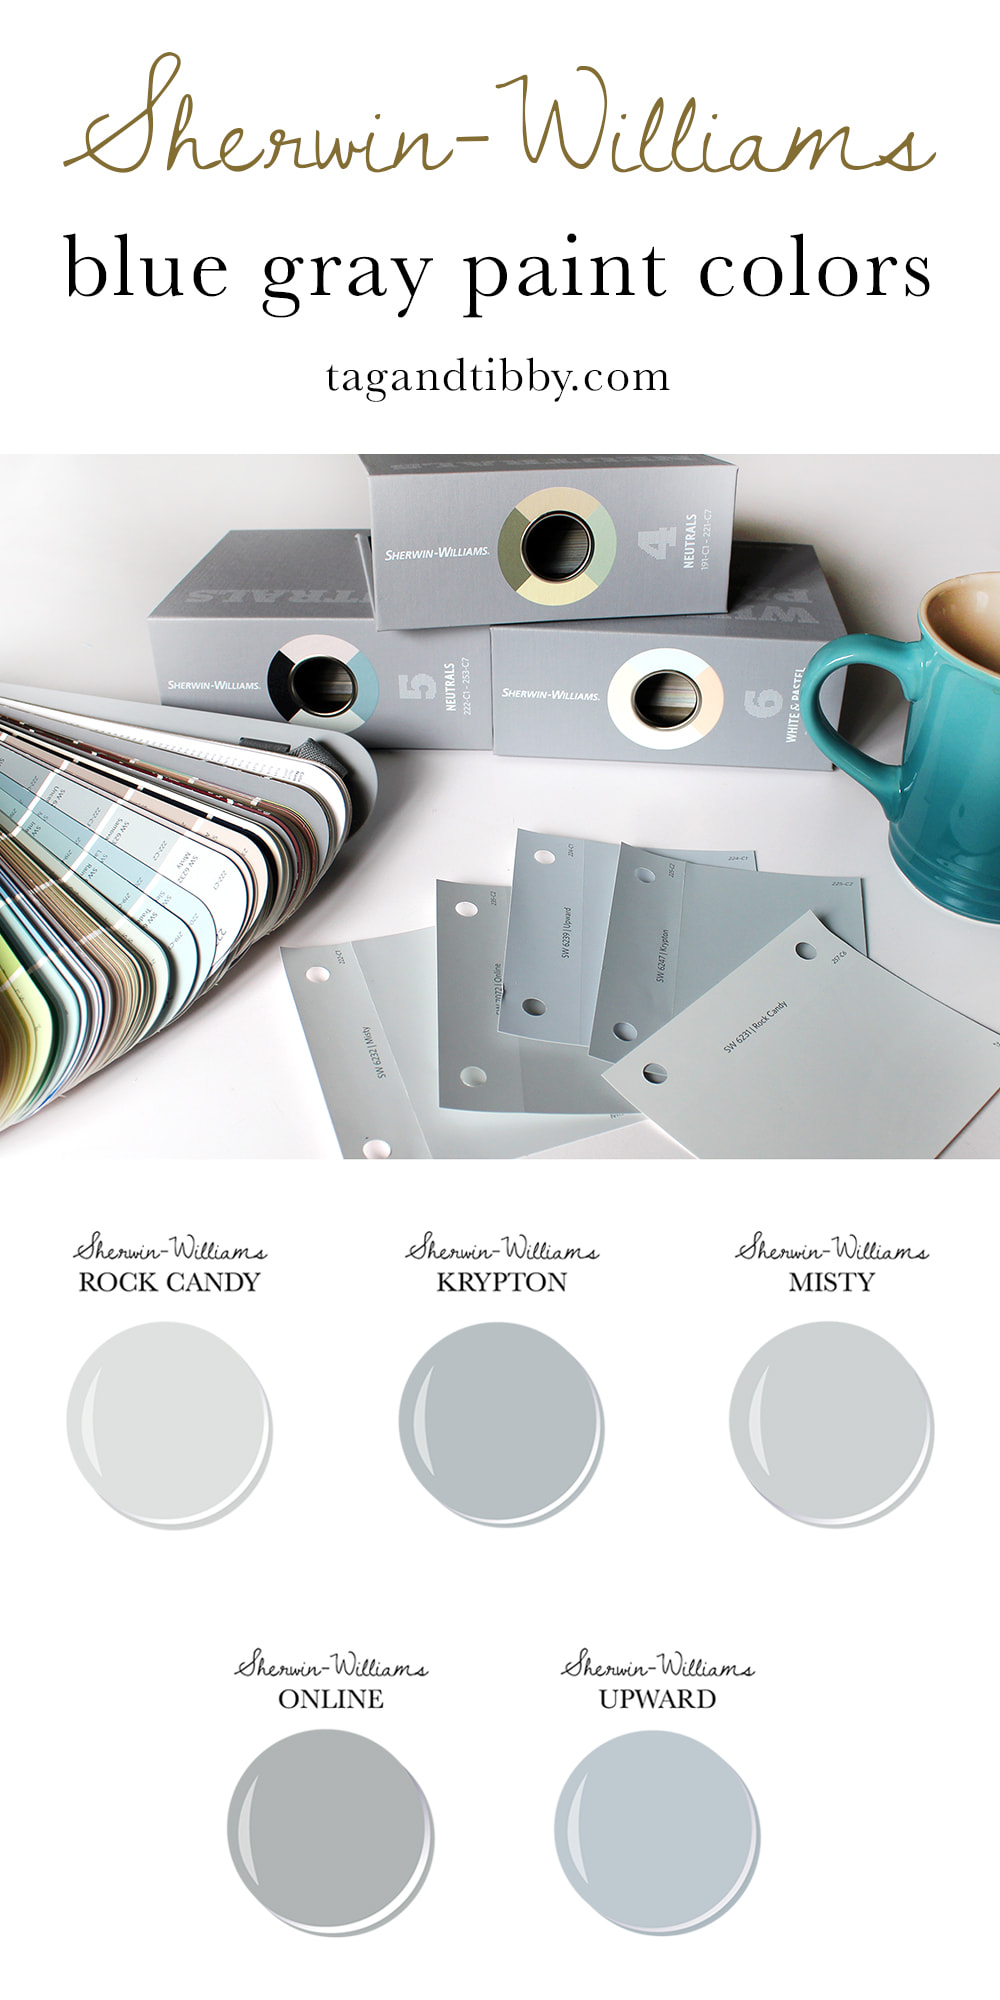 5 favorite blue gray Sherwin Williams paint colors #DIYhome #paintcolors